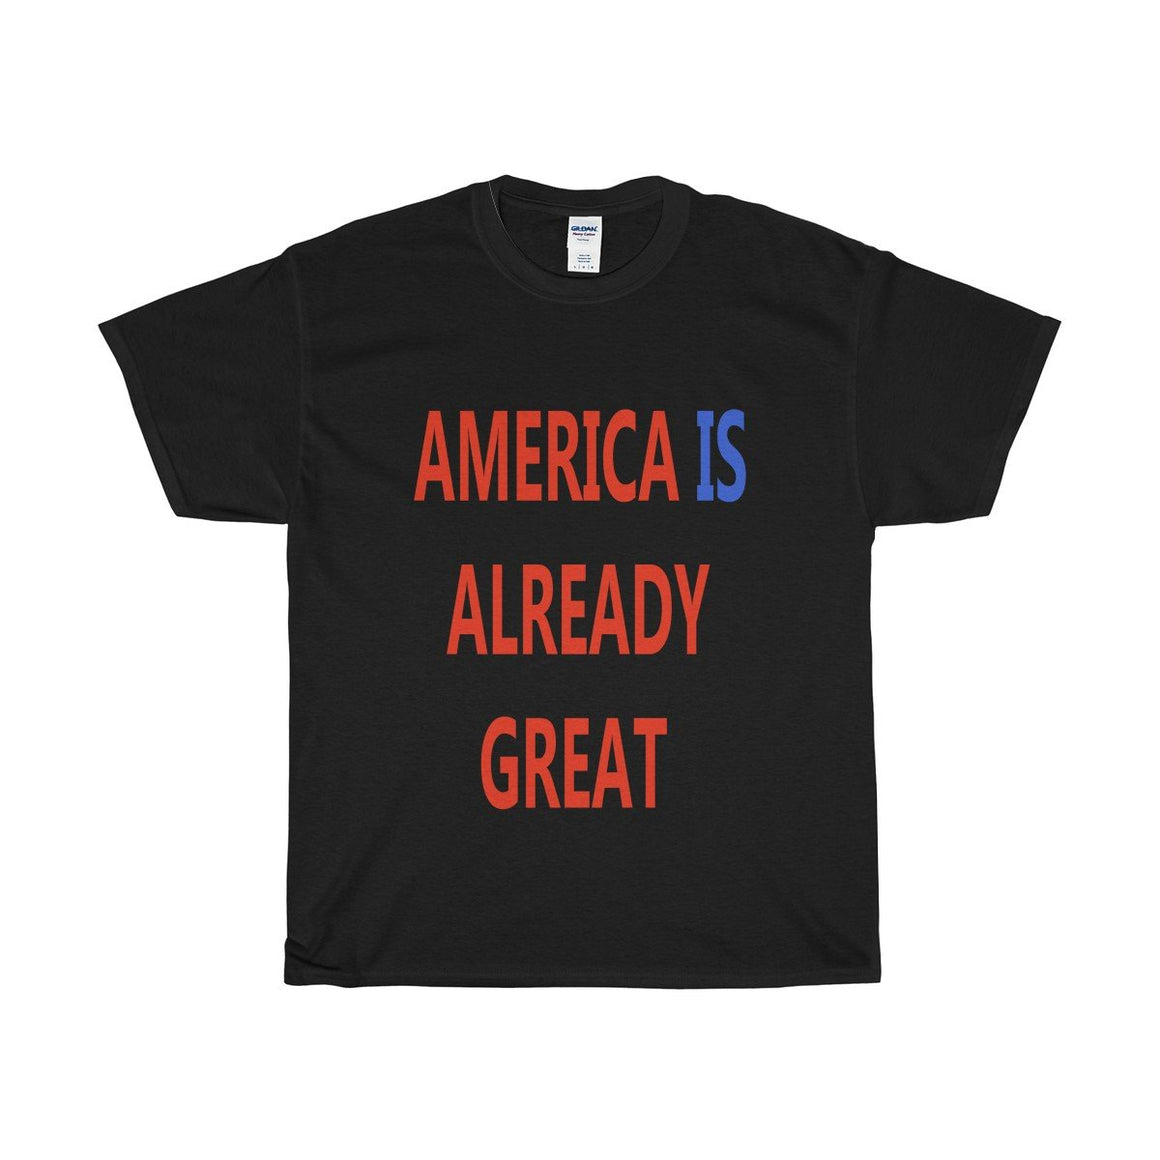 MY FABULOUS STYLE AMERICA IS ALREADY GREAT HEAVY TSHIRT UNISEX